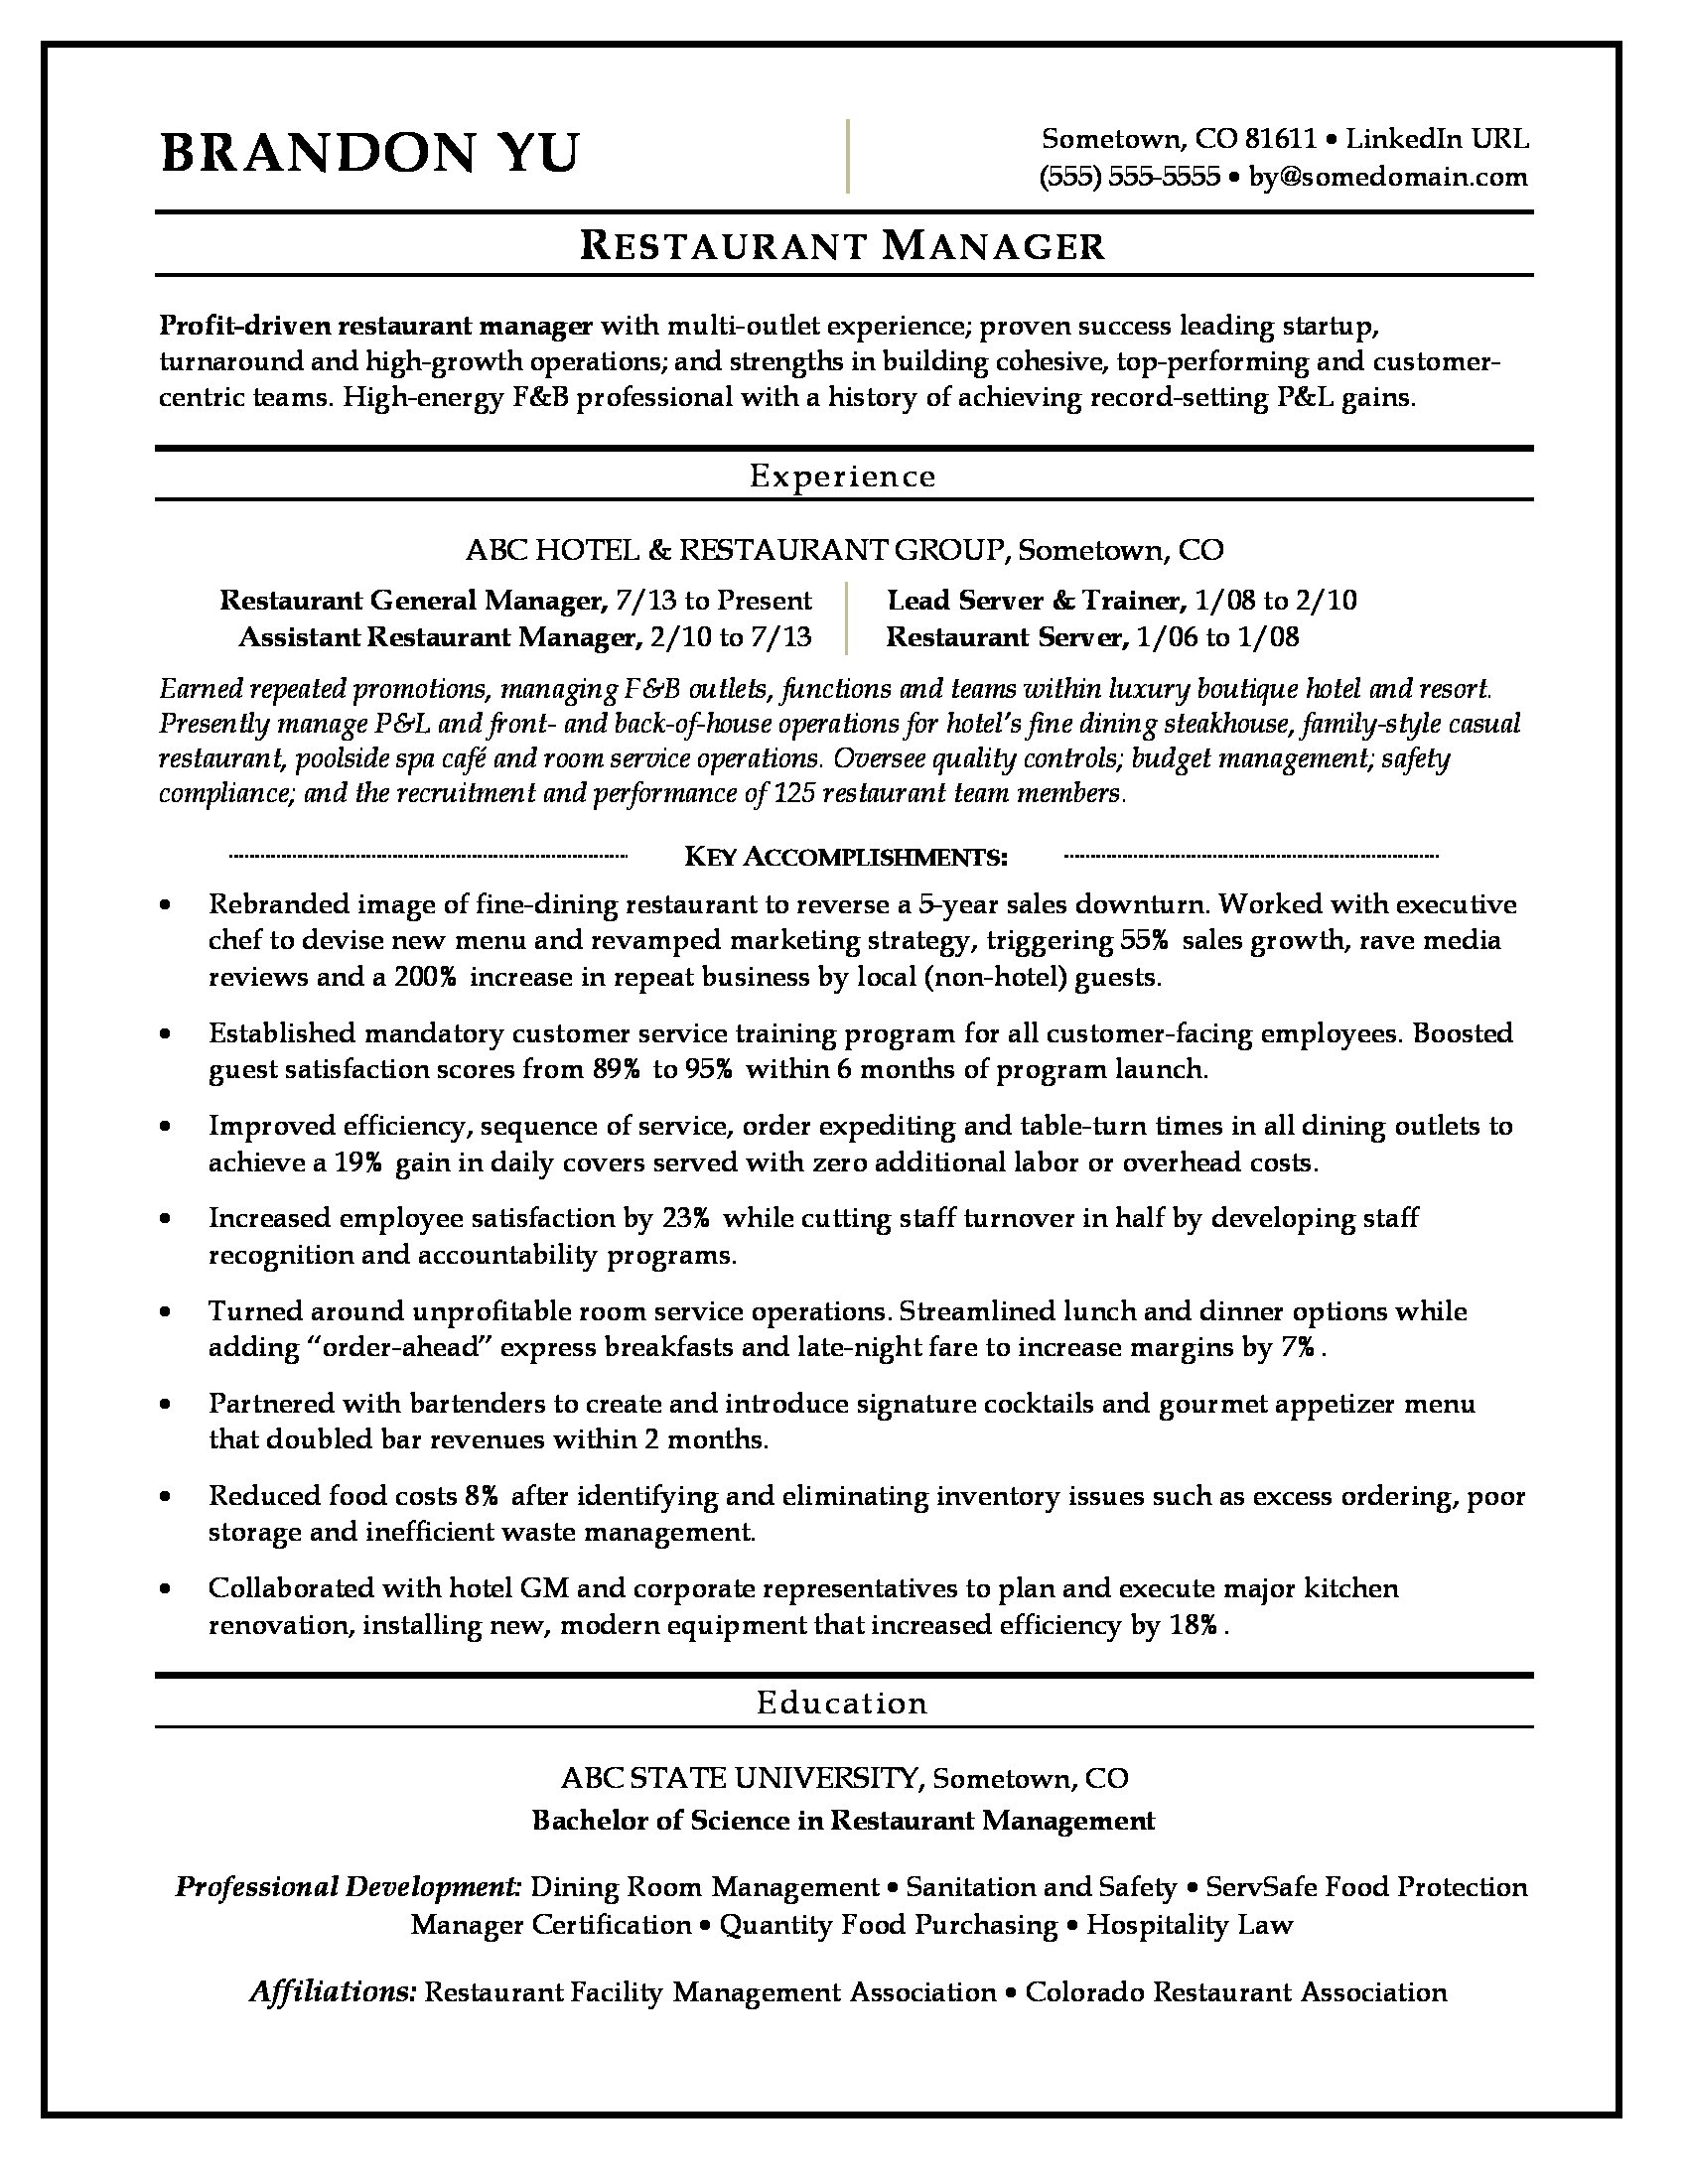 Sample Resume For A Restaurant Manager  Fast Food Restaurant Resume